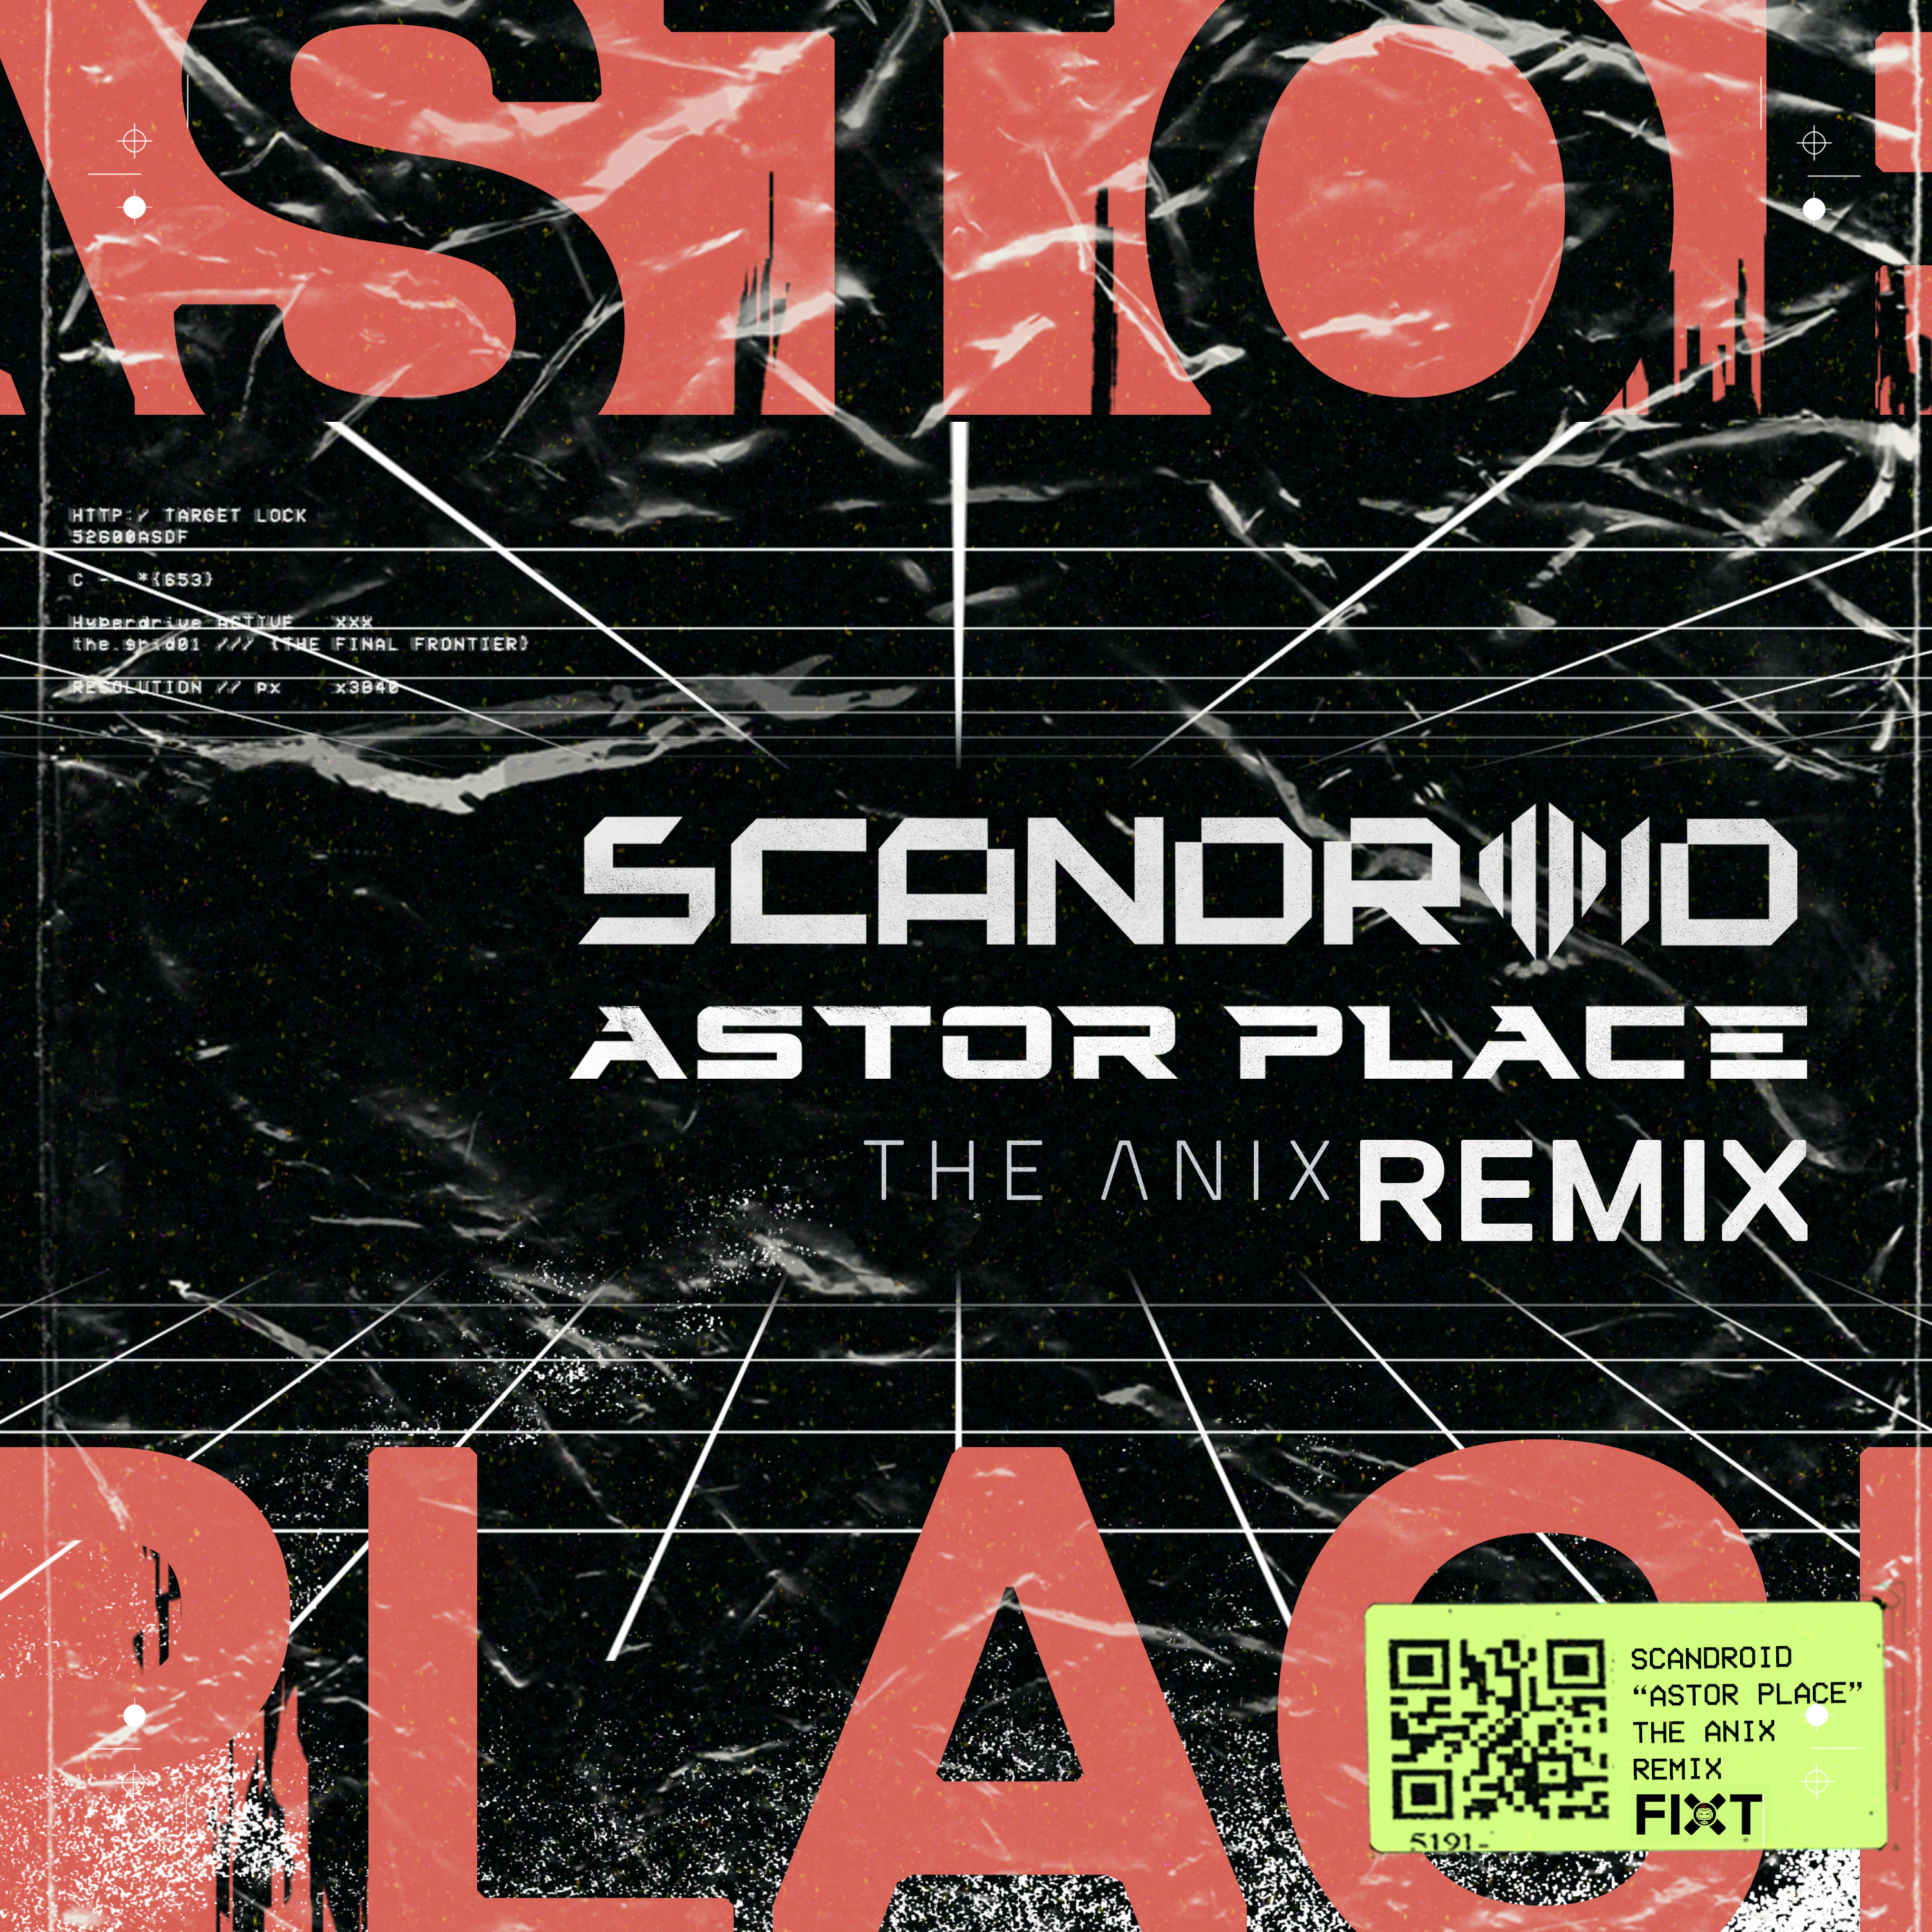 Scandroid - Astor Place (The Anix Remix) [Single] Image